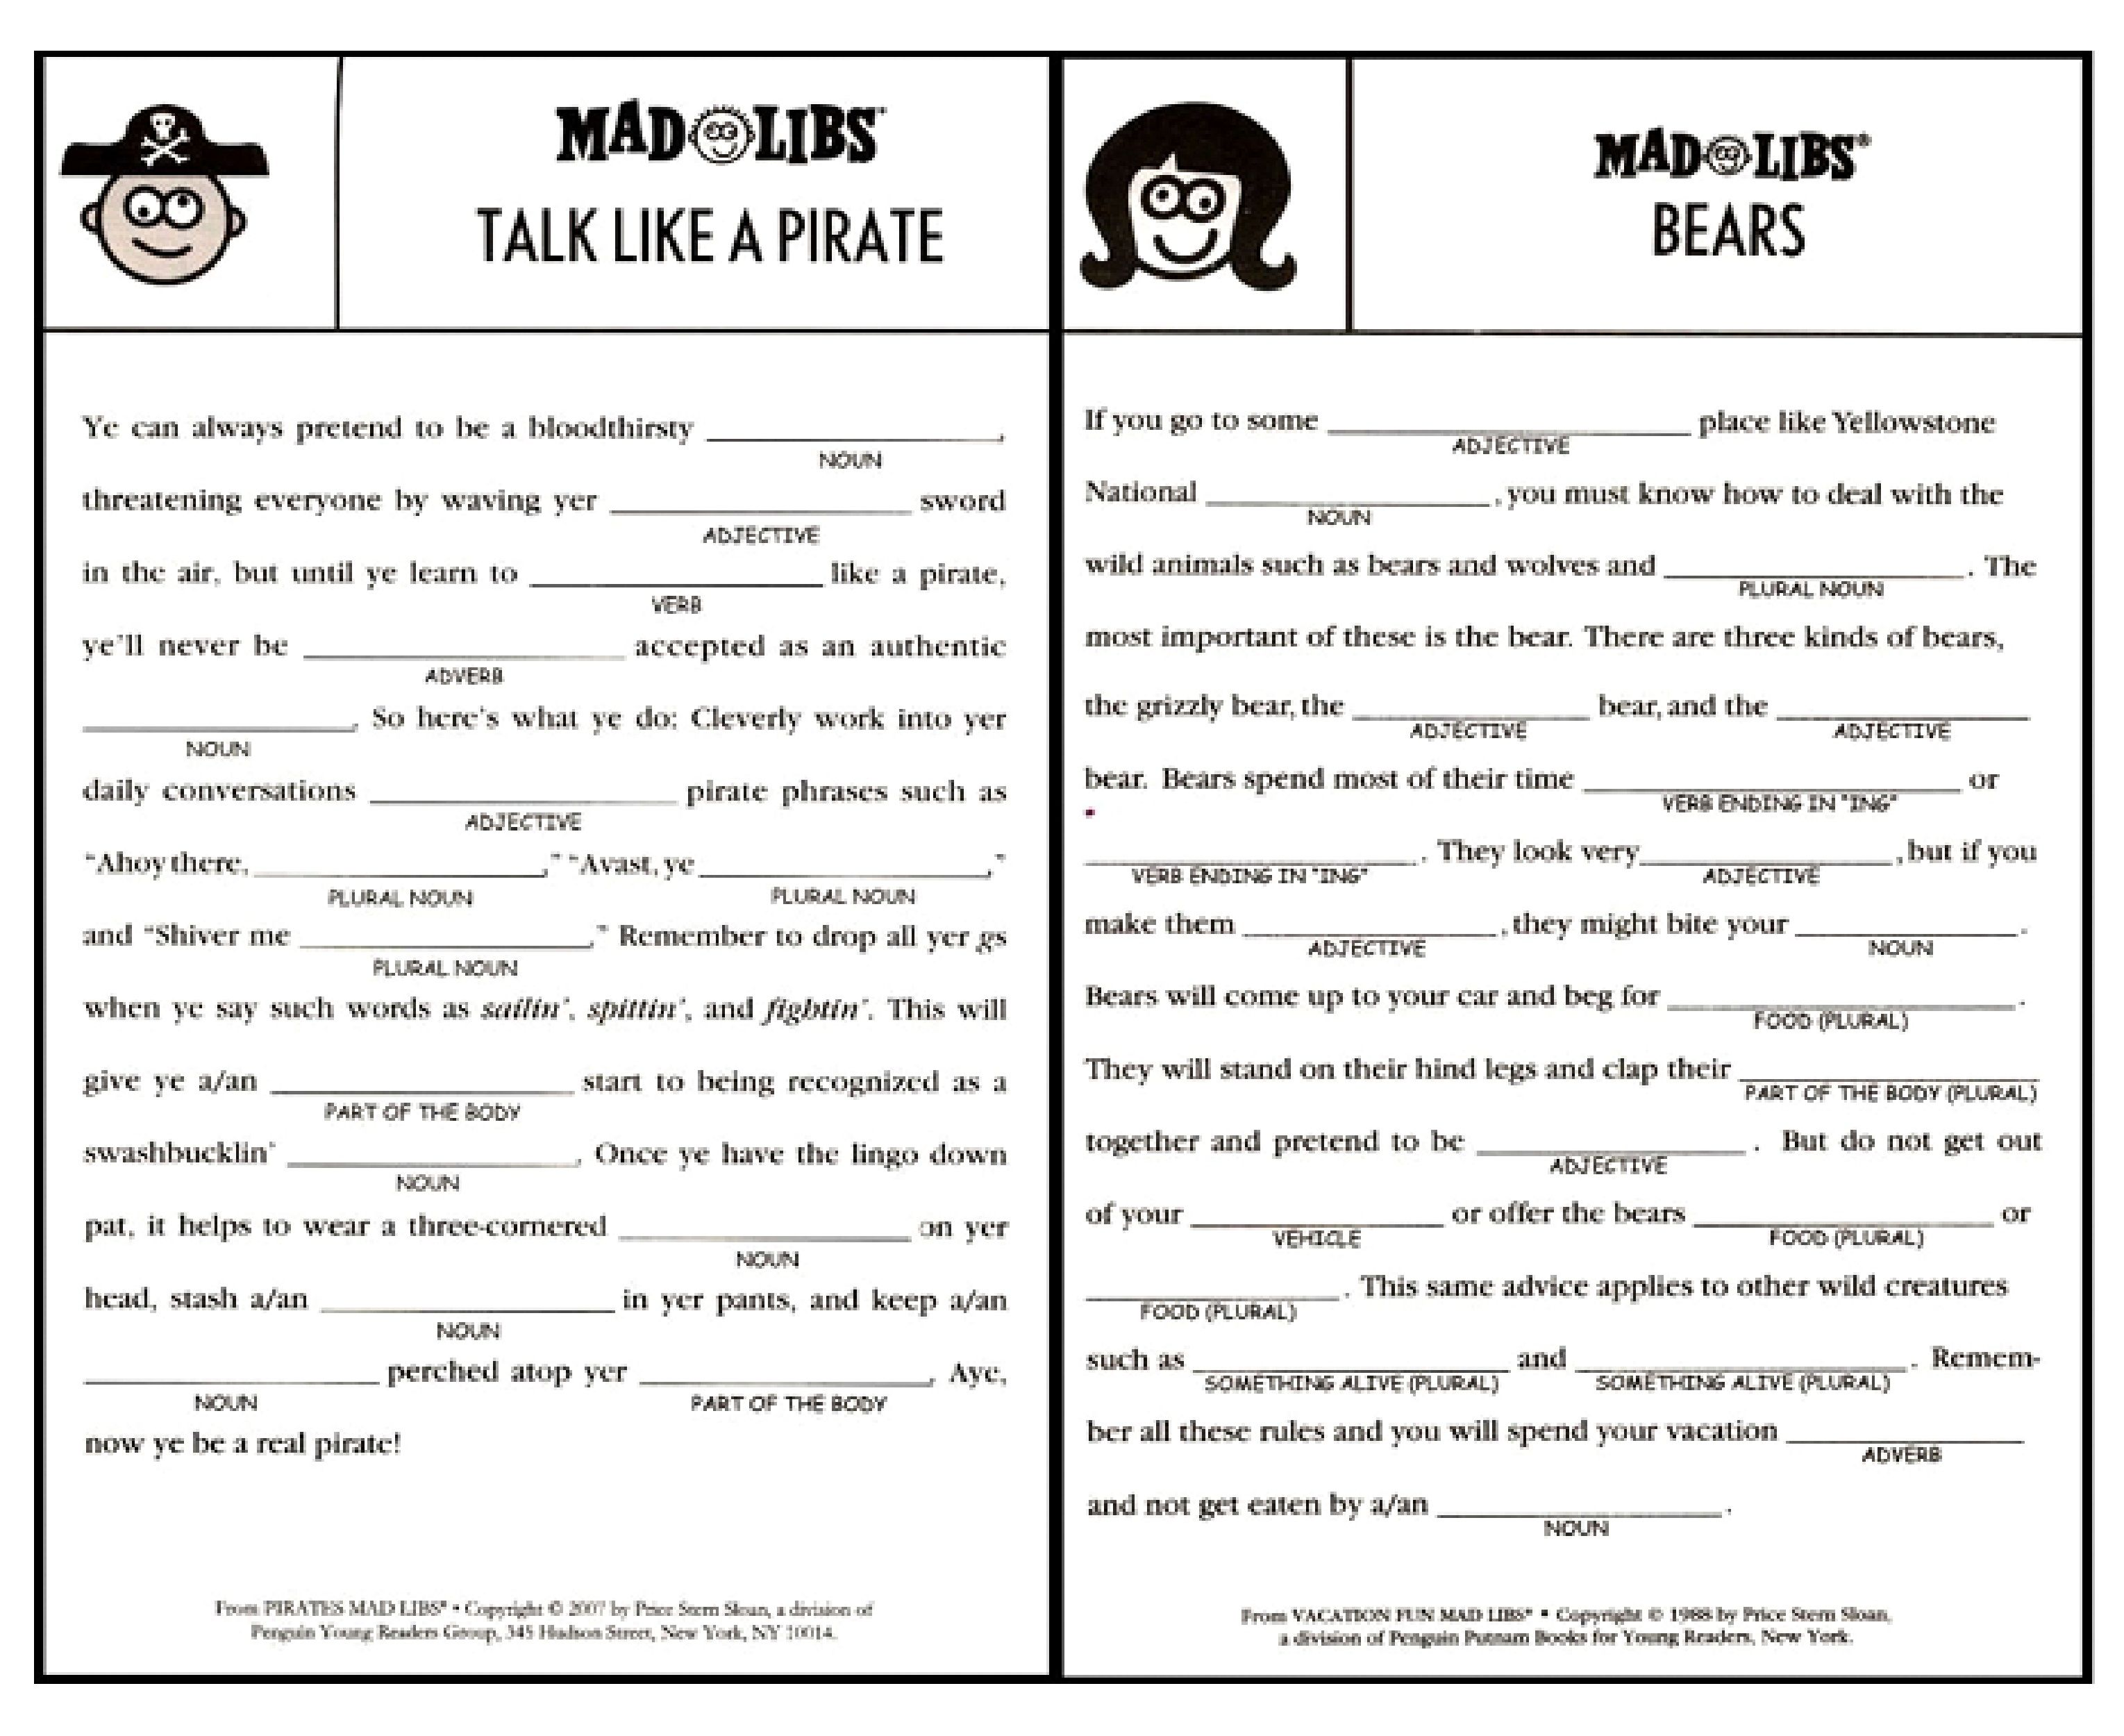 Worksheets Mad Libs Worksheets printable mad libs sheets for adults google search cousins camp road trip games activities